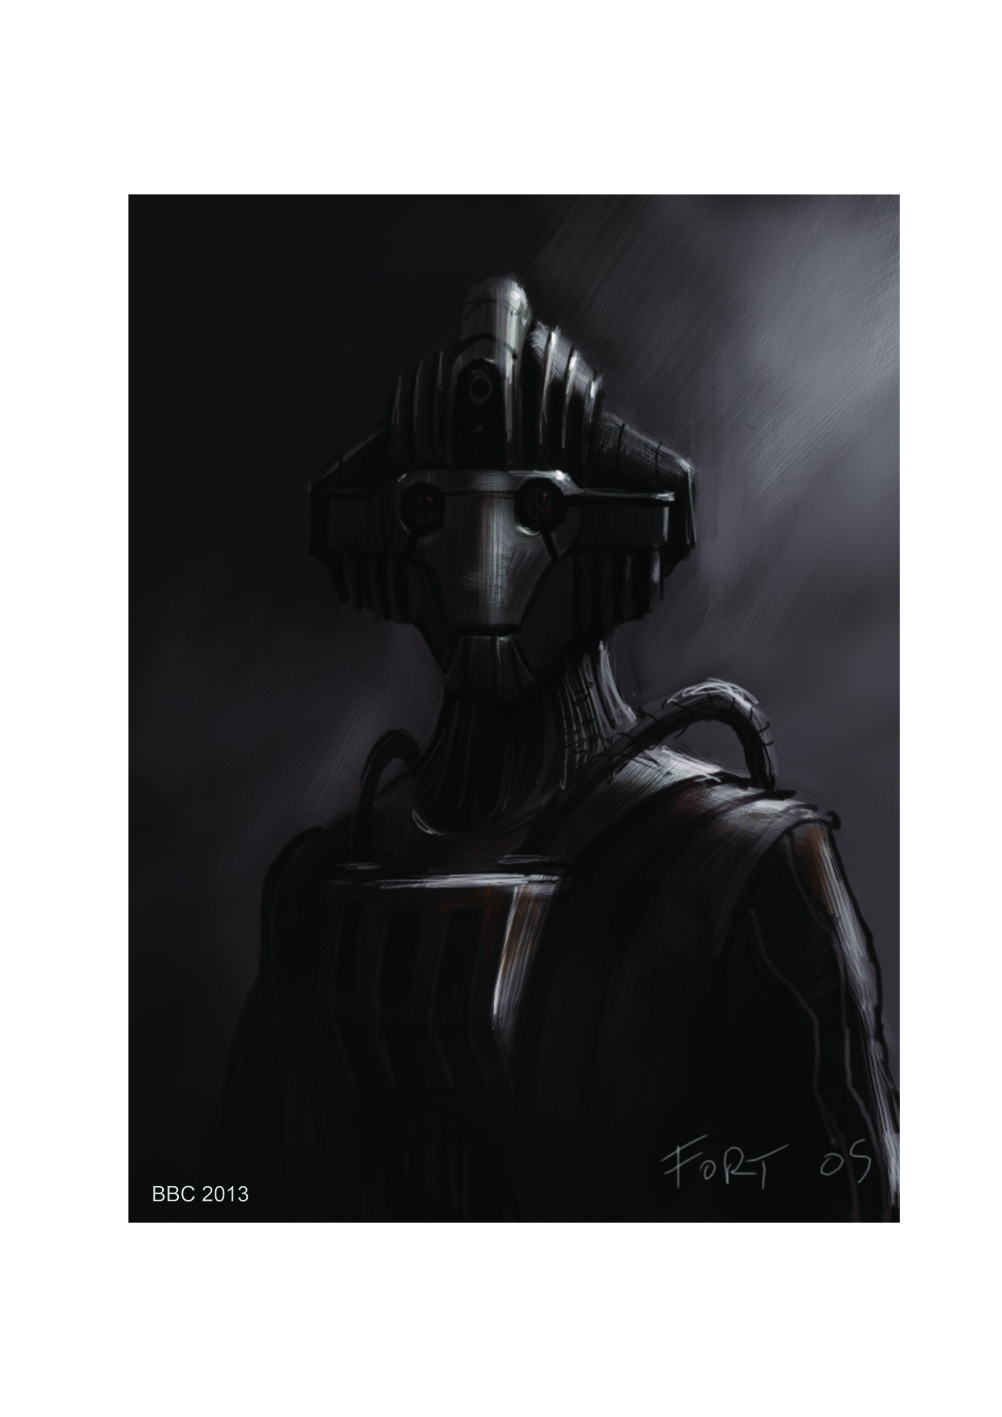 Cyberman by Alexander Fort, a concept artist who has worked on Dr Who and Game of Thrones